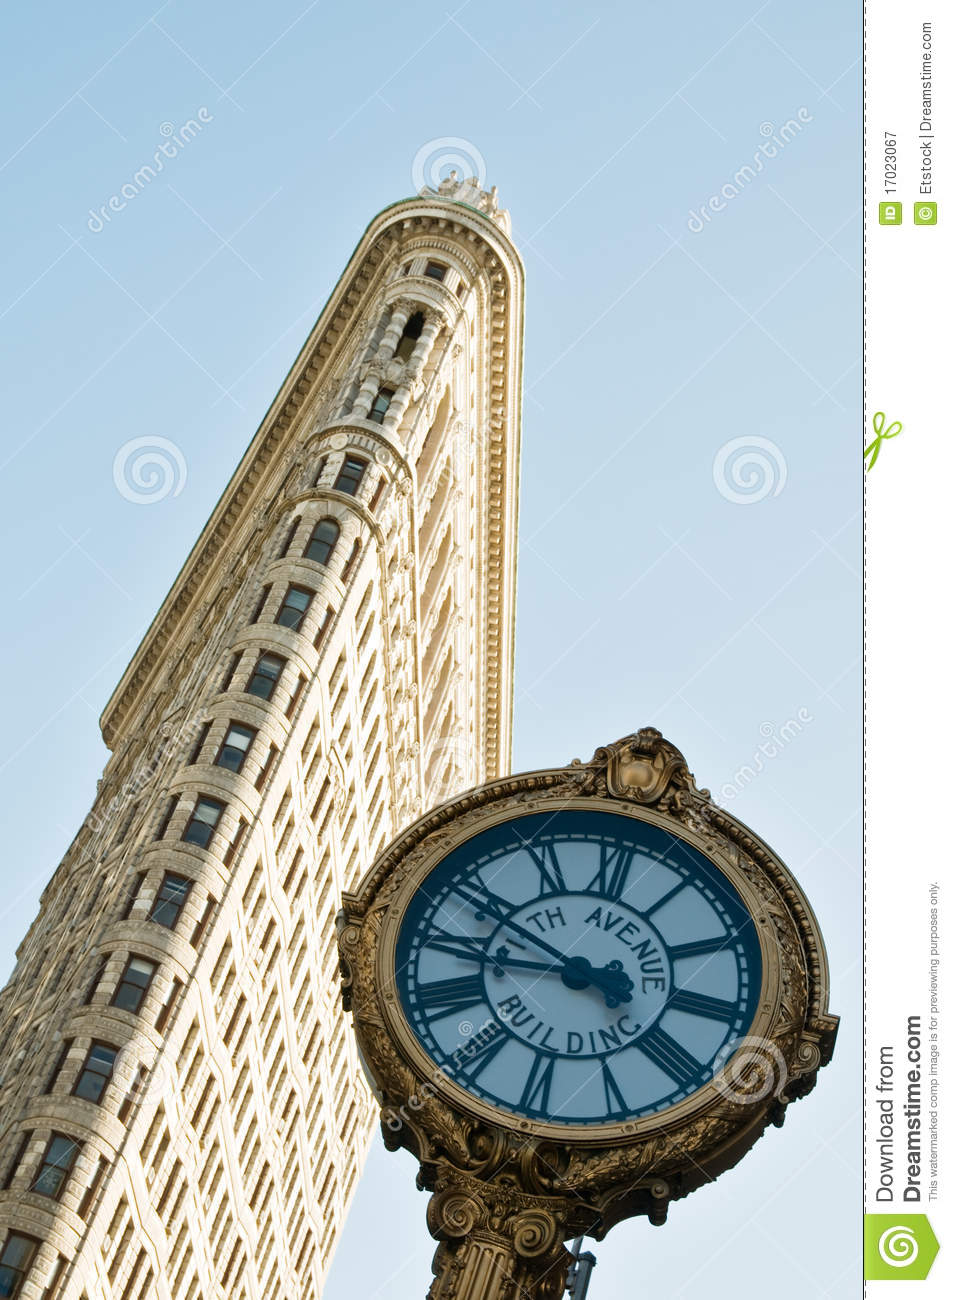 Famous flatiron building in New York City